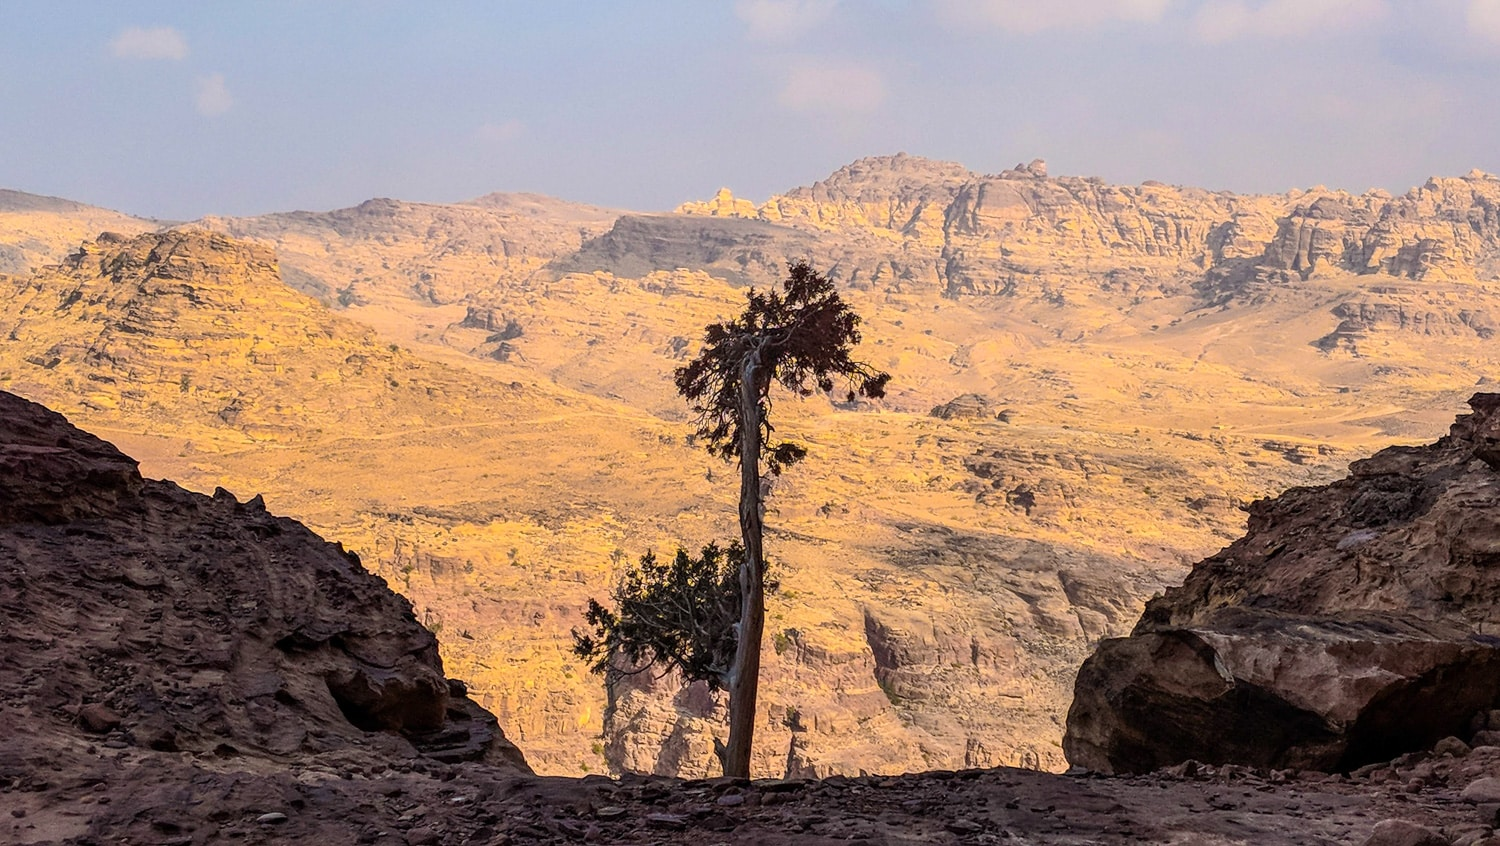 A lonely tree in front of wide valley near Petra Jordan